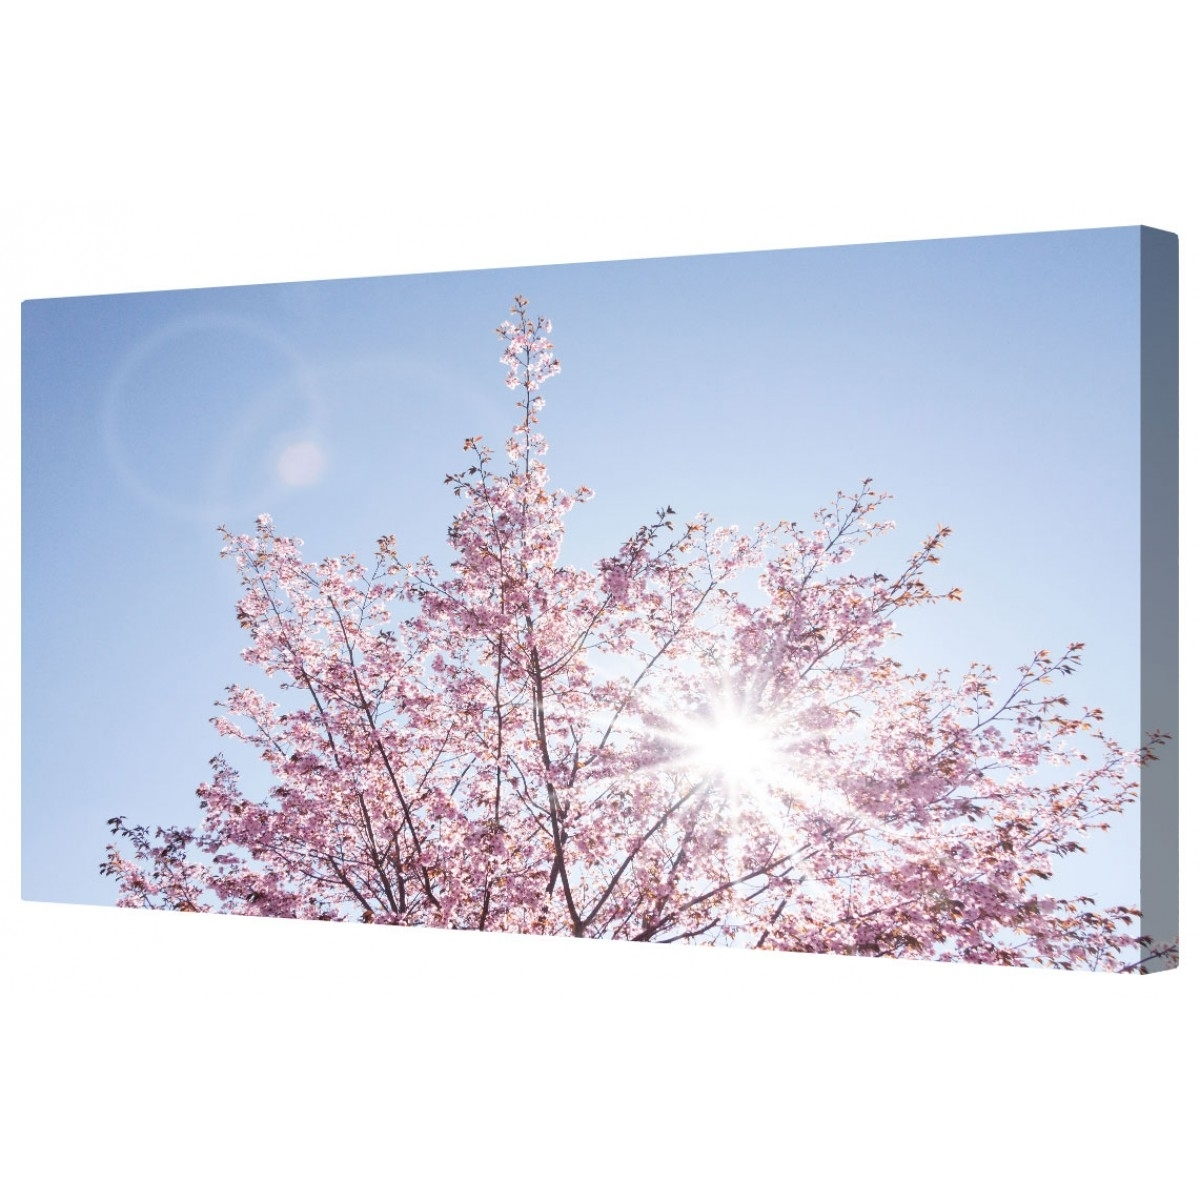 Canvart | Sunlit Cherry Blossom Framed Canvas Wall Art Picture Intended For Current Cherry Blossom Wall Art (View 4 of 20)